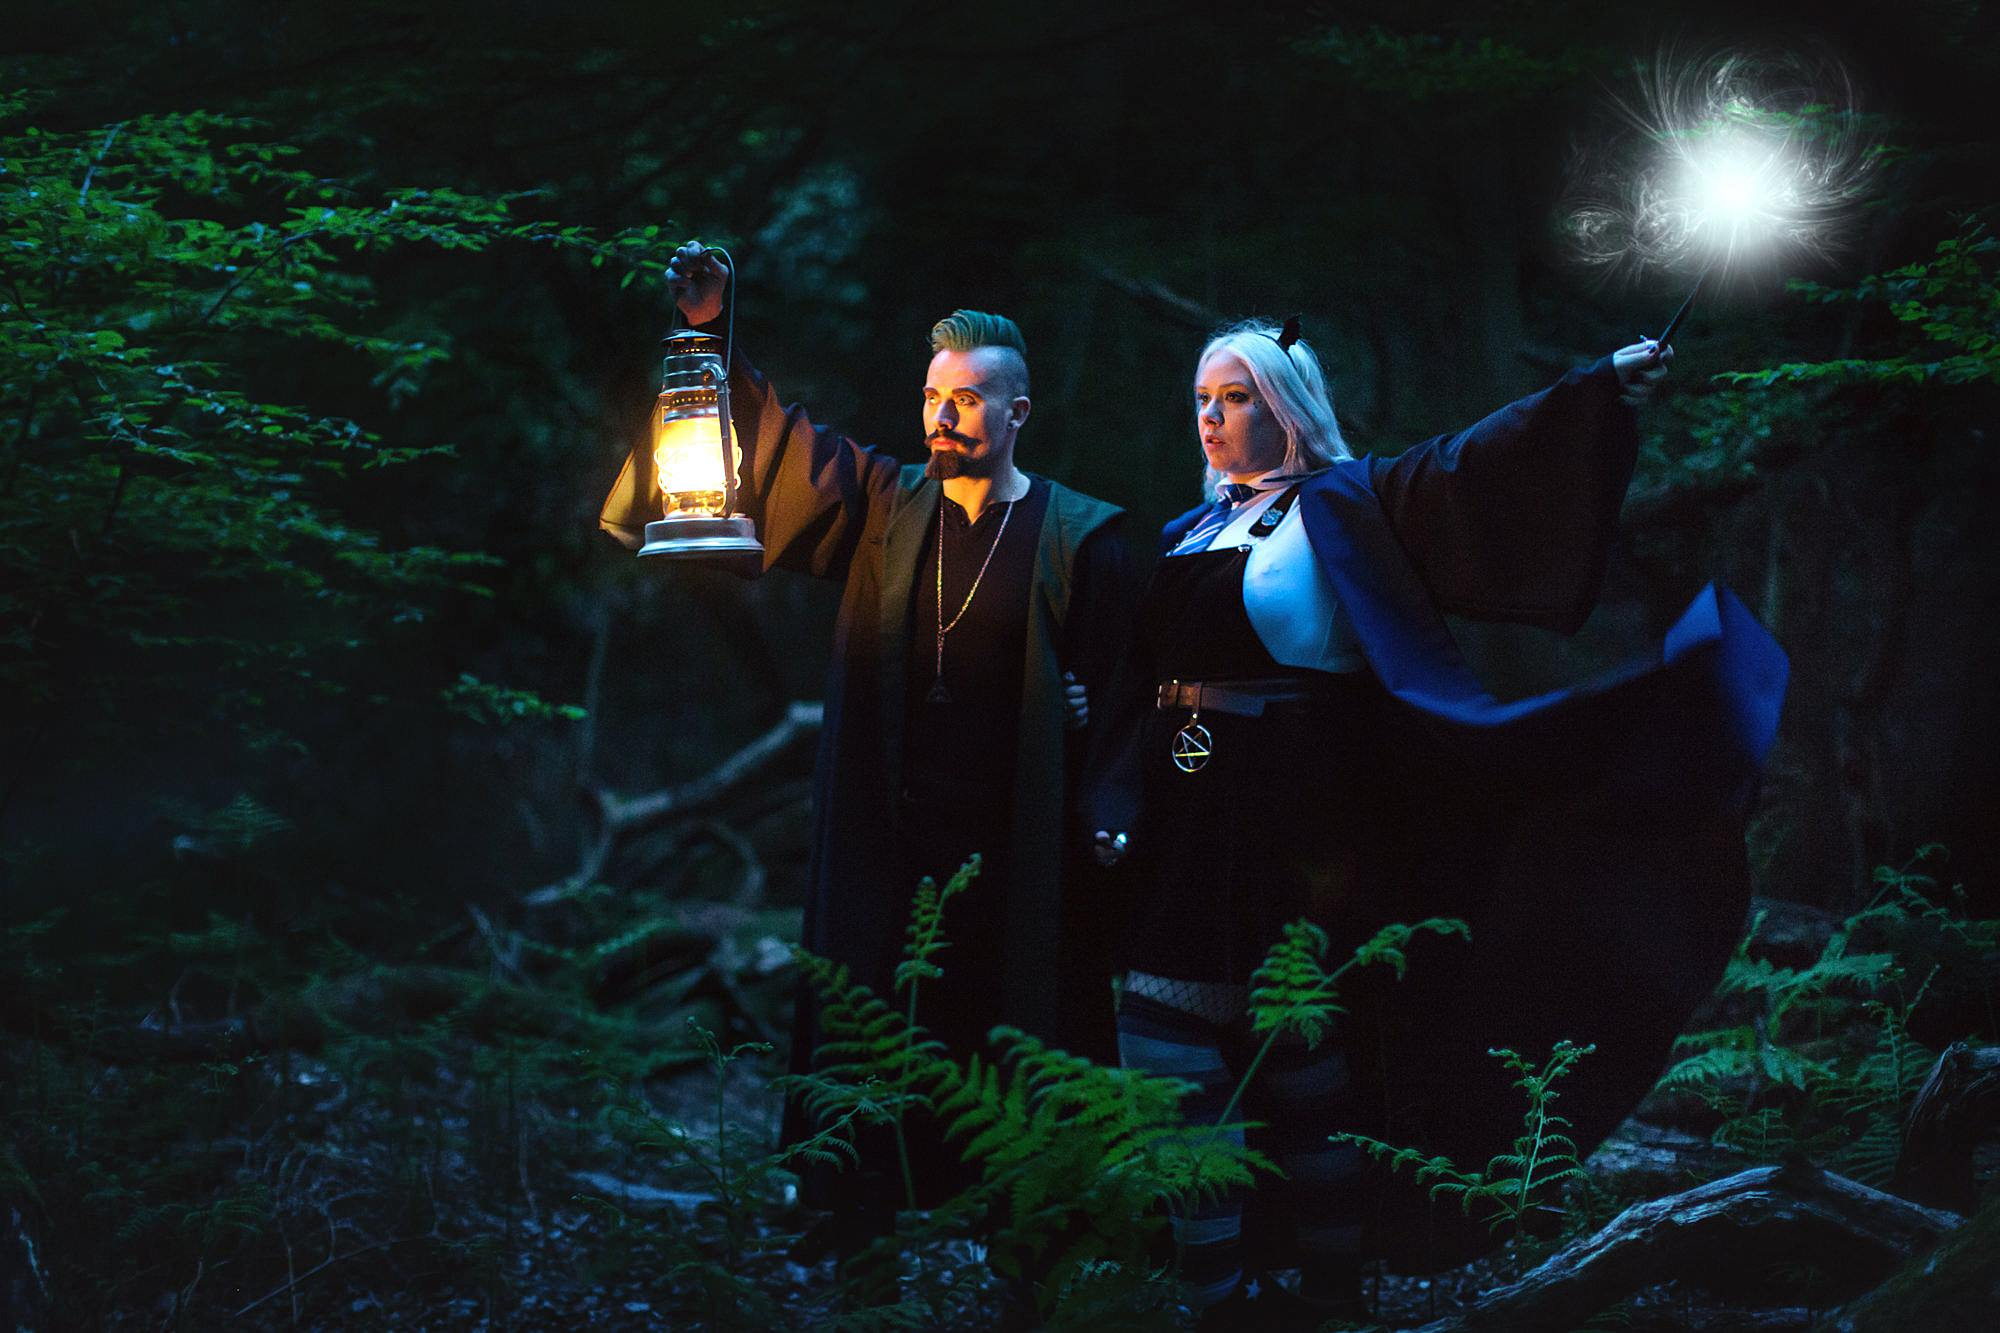 Harry Potter engagement shoot couple with lamps and wands in forest